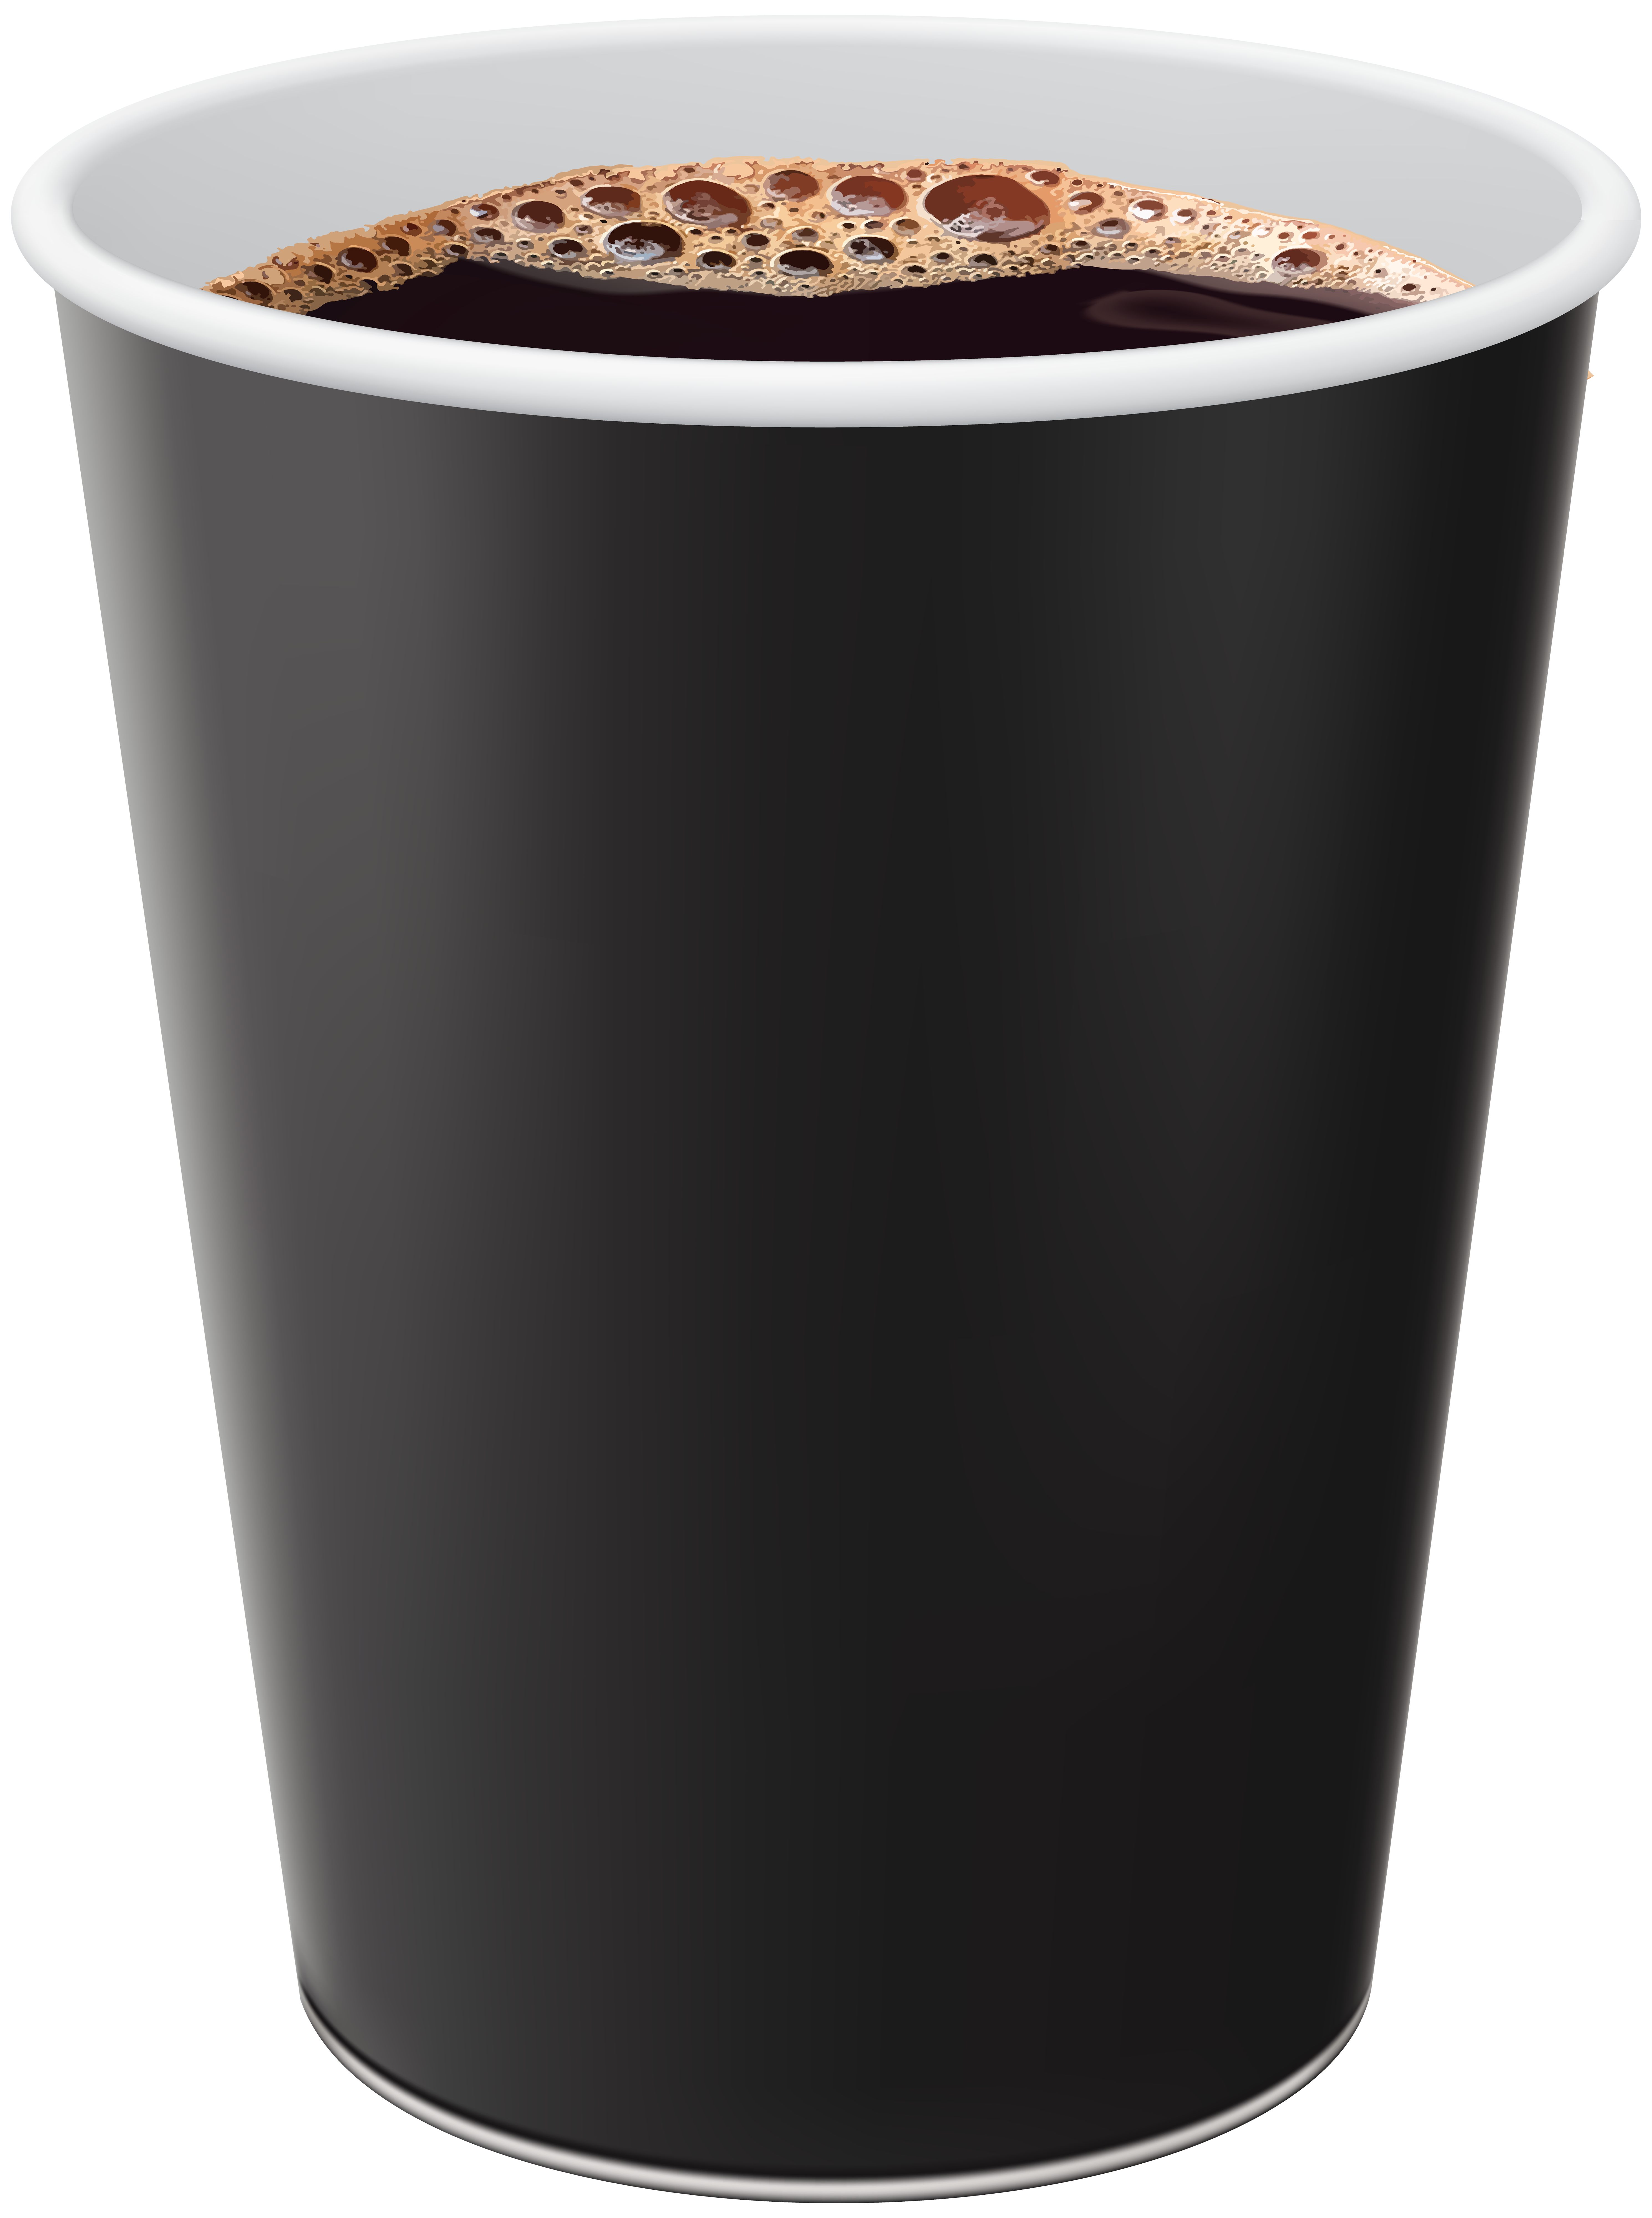 Takeaway coffee clipart svg black and white library Takeaway Coffee Cup PNG Clip Art | Gallery Yopriceville ... svg black and white library